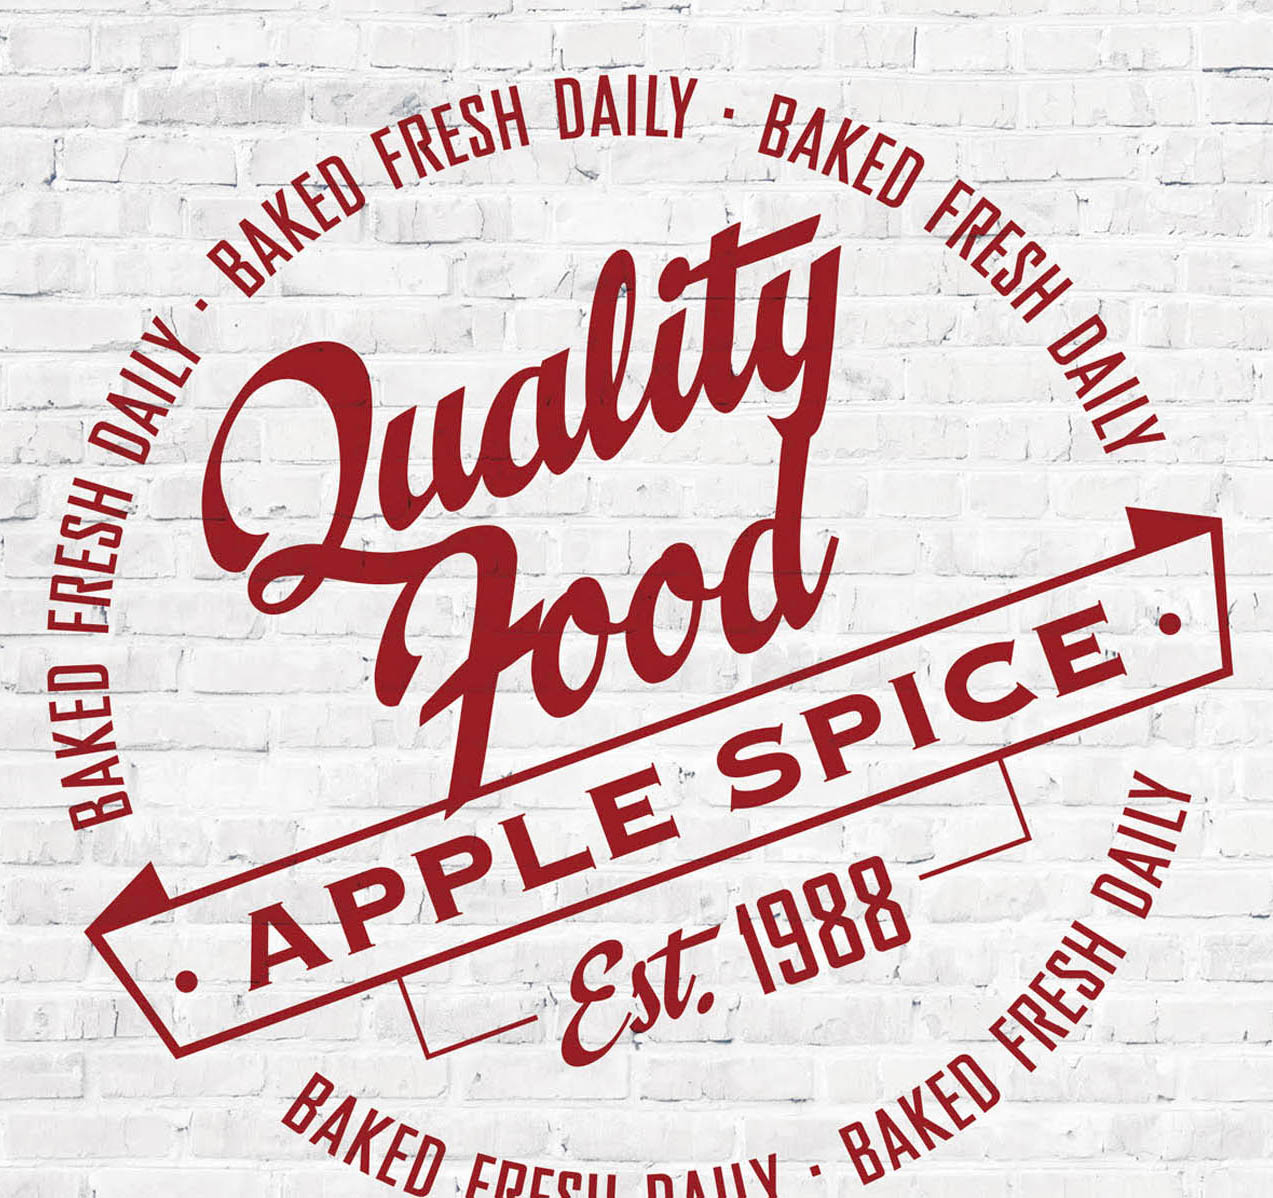 white brick wall red apple spice logo